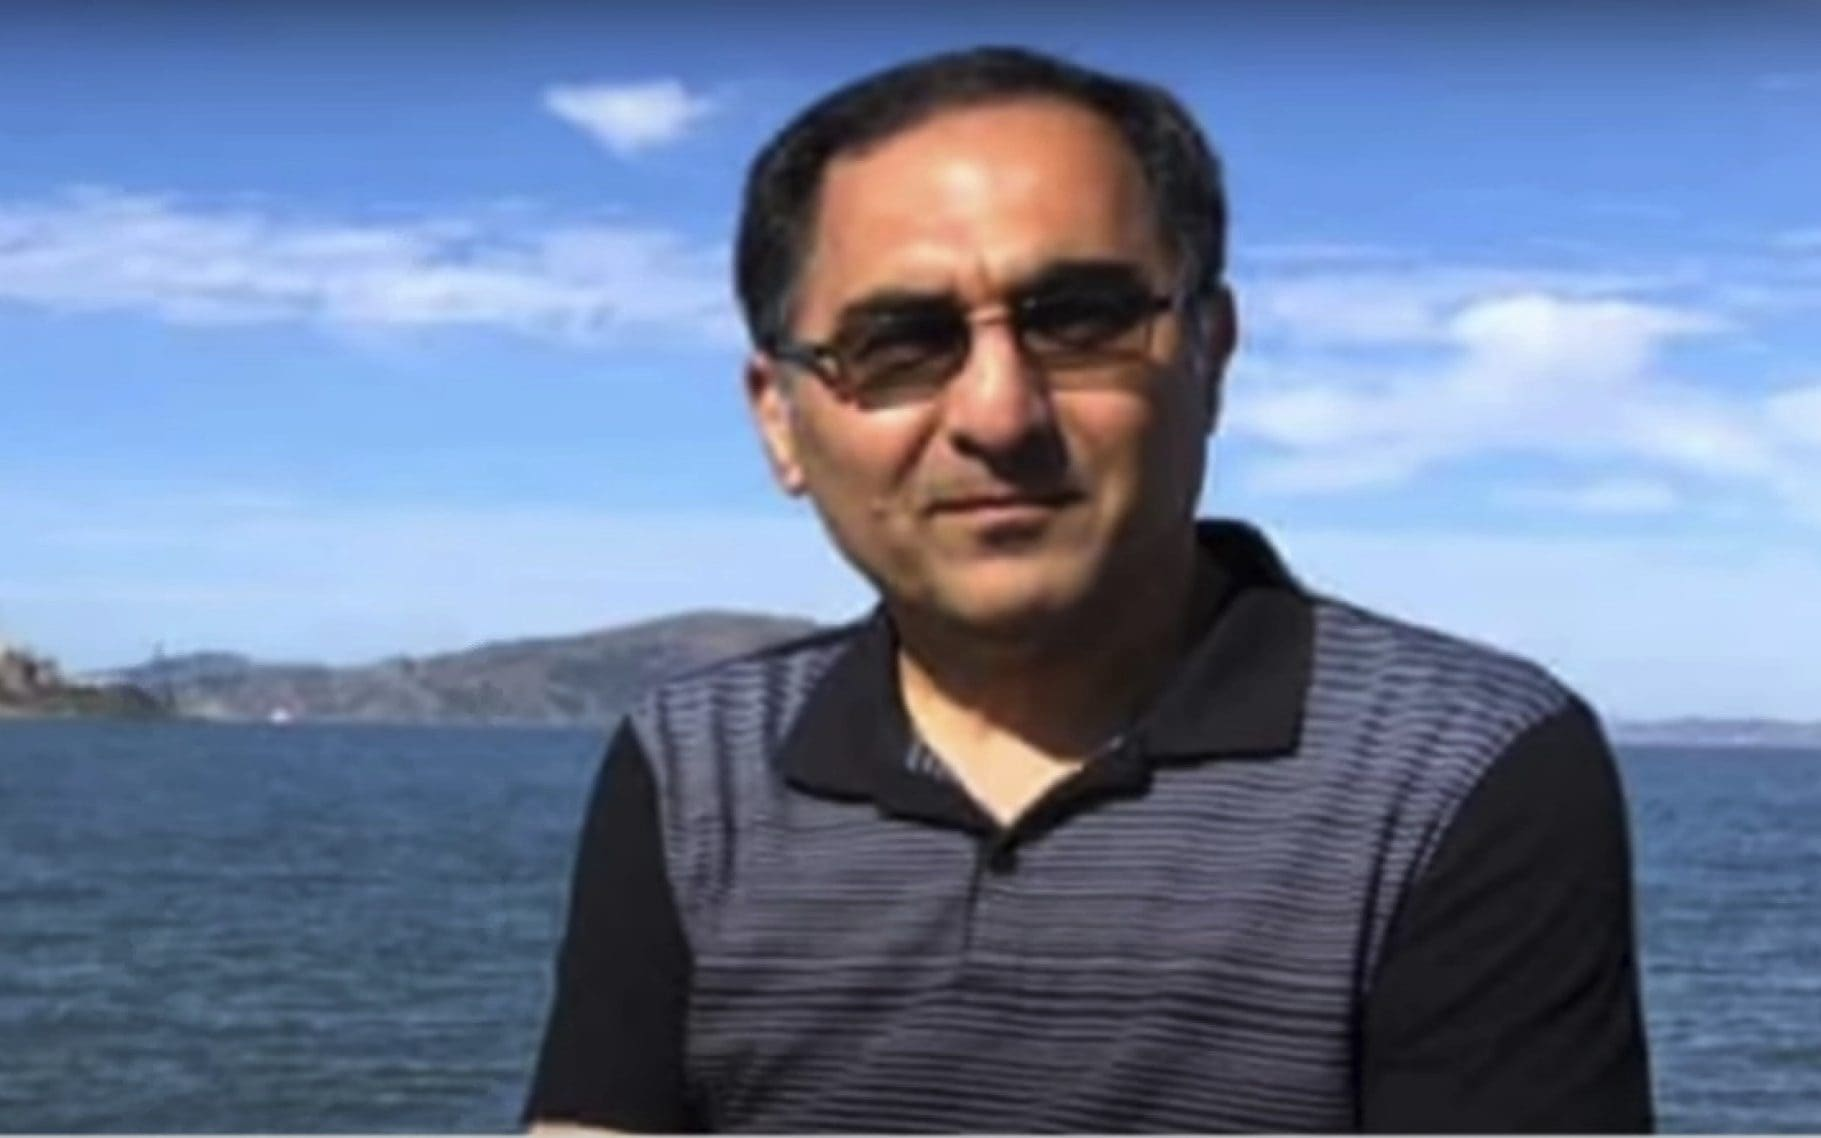 Iranian spy scientist flies home after release from US prison, raising hopes of prisoner swap